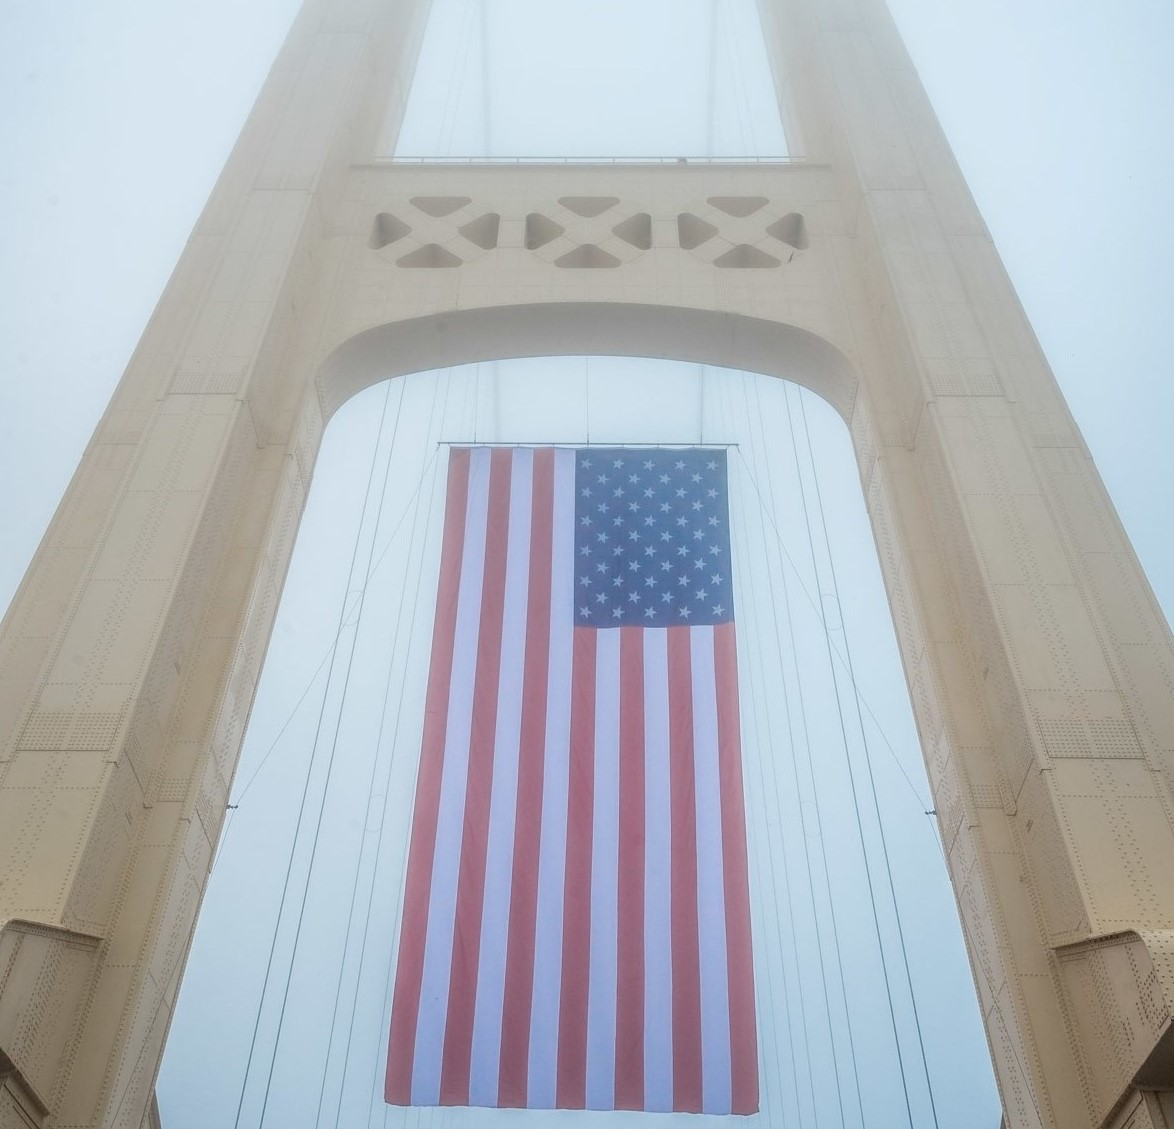 Giant American flag hangs from Mackinac Bridge on 9/11